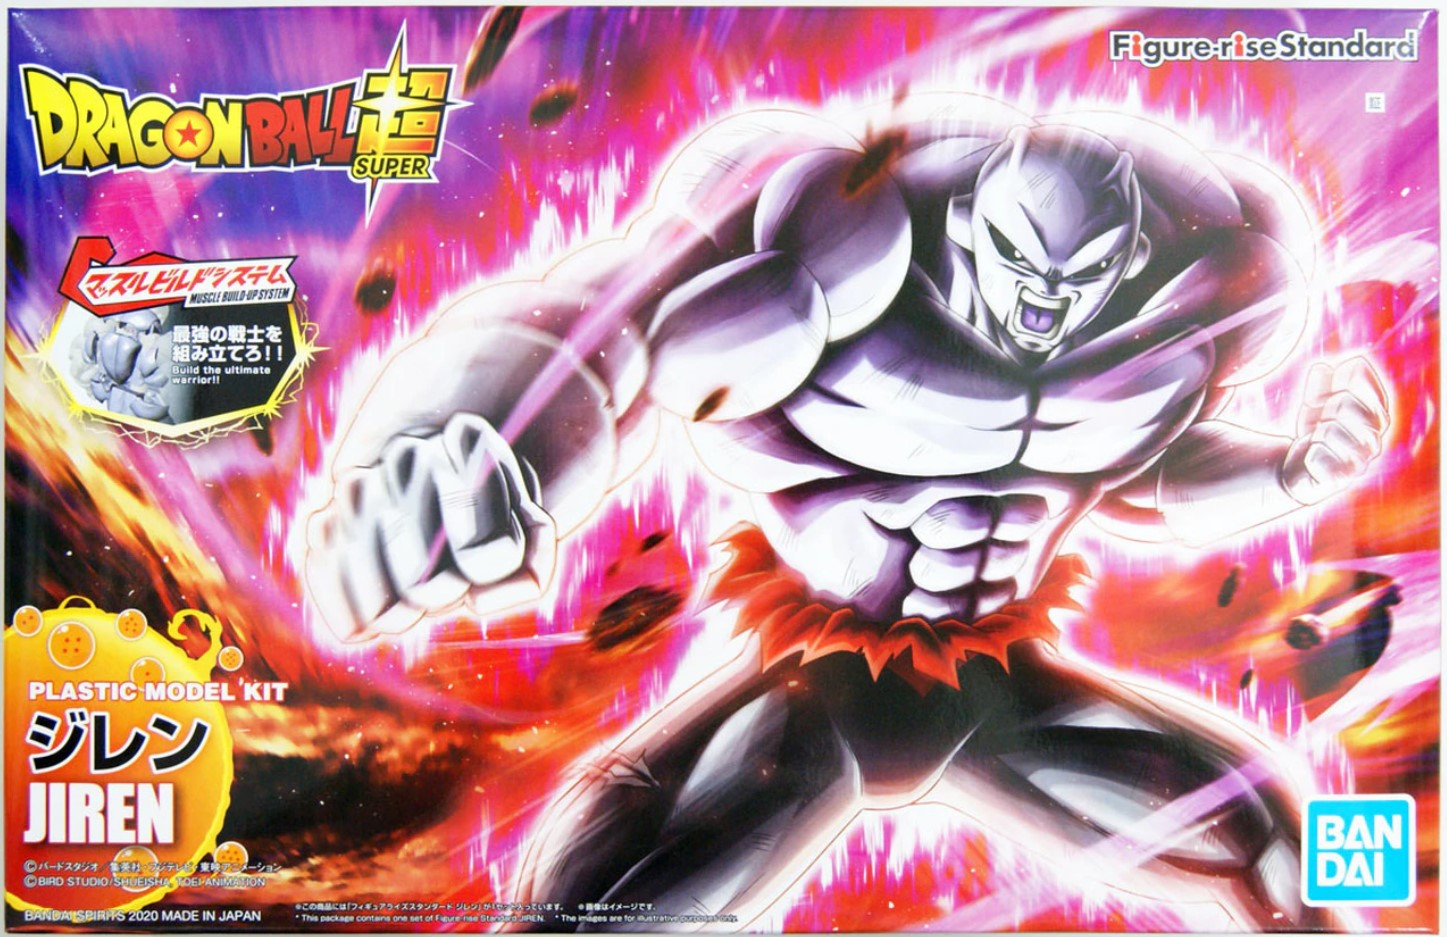 "Bandai Jiren ""Dragon Ball Super"", Bandai Spirits Figure-rise Standard"